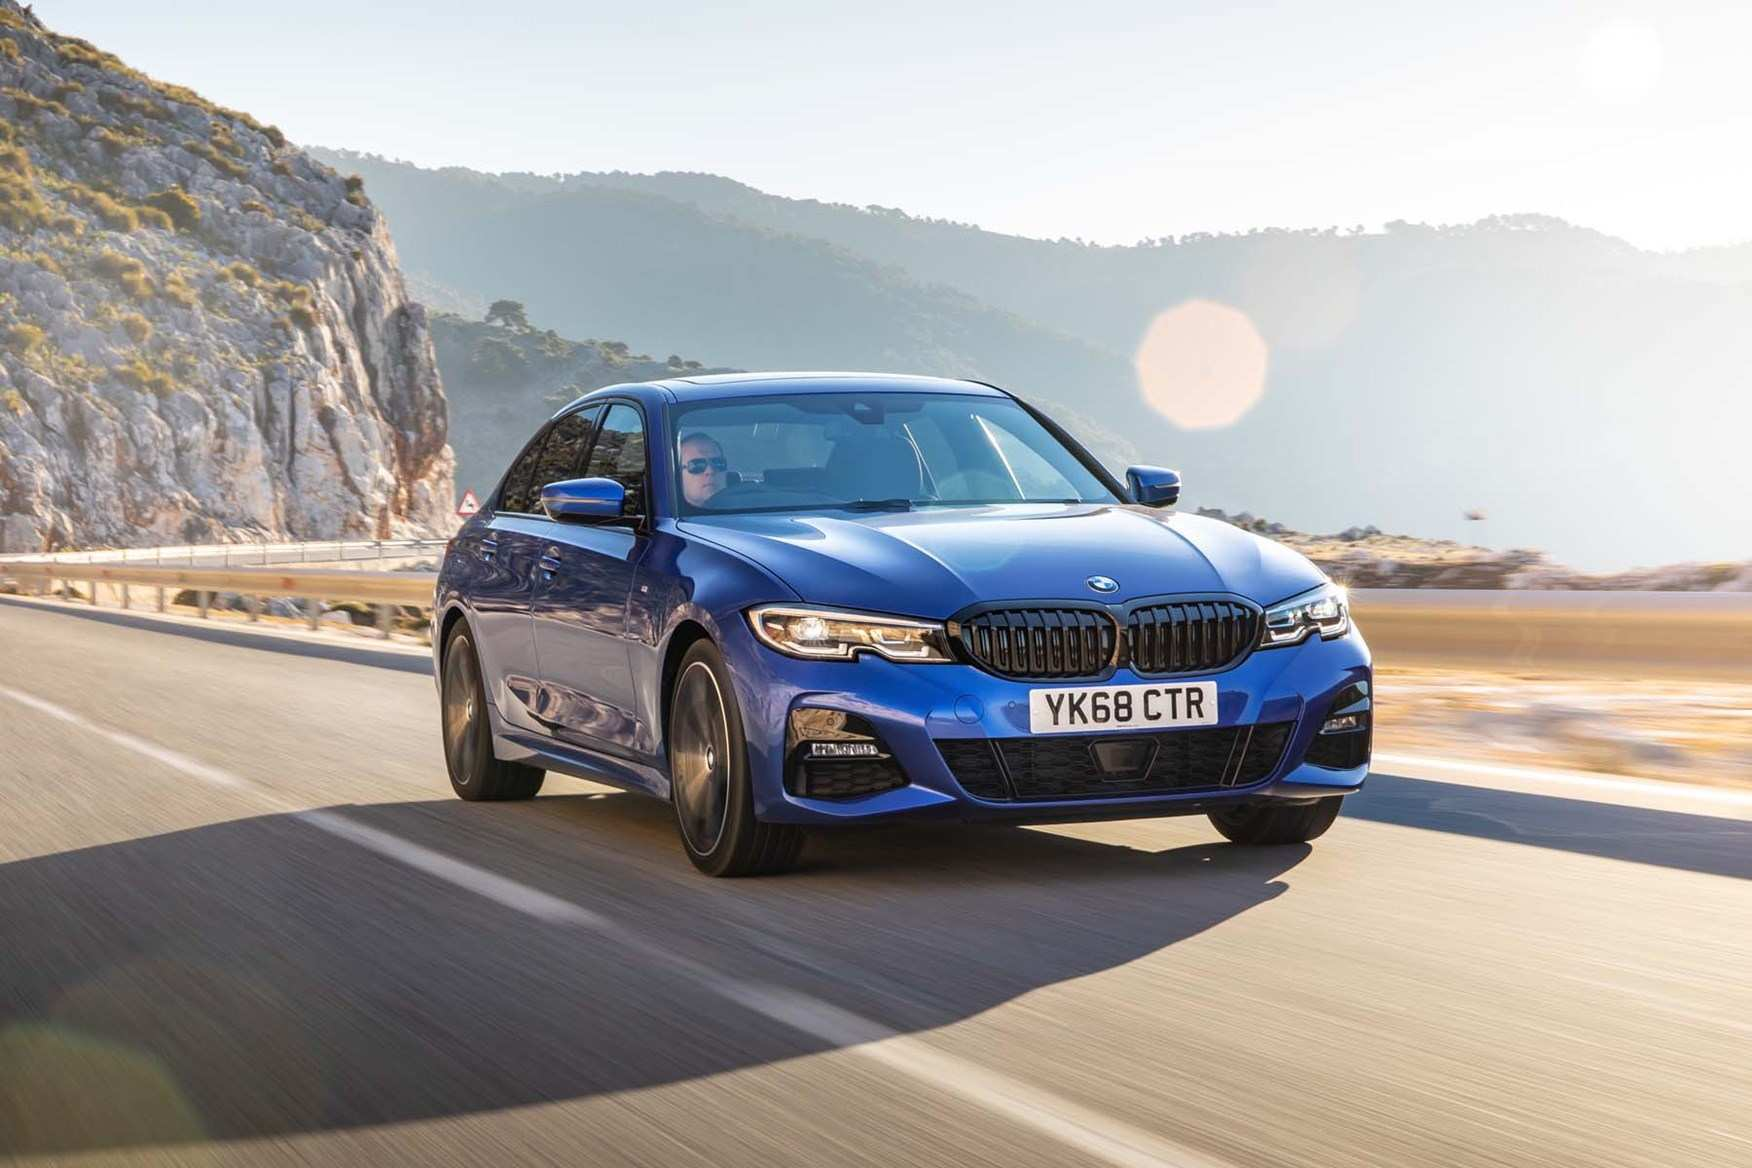 71 A 2019 BMW 3 Series Edrive Phev New Review